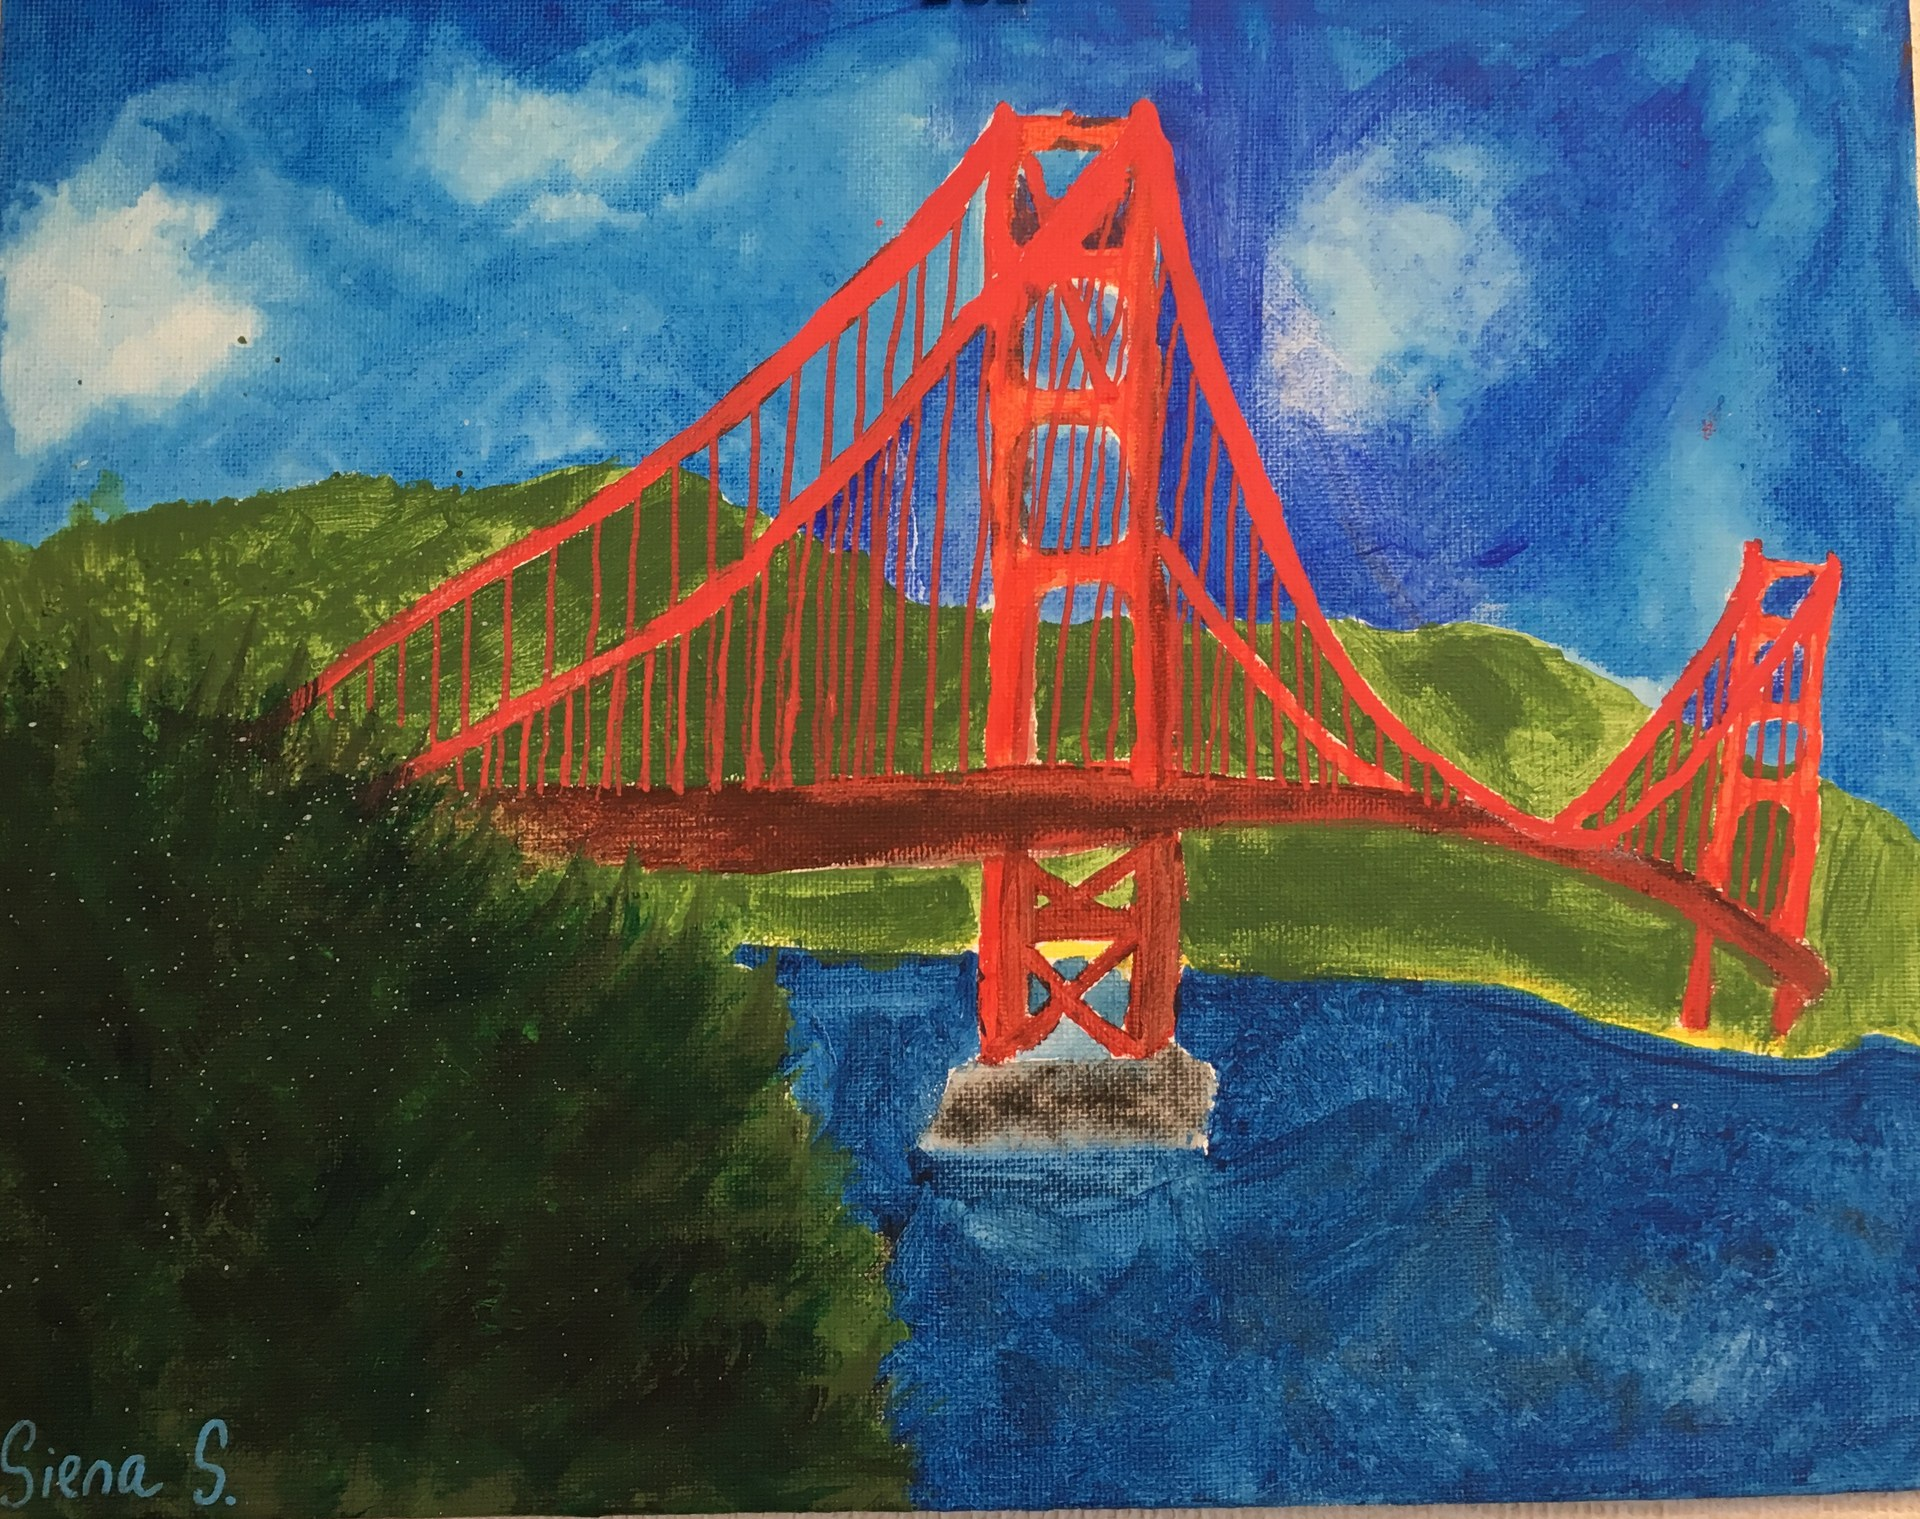 Student Painting of the Golden Gate Bridge